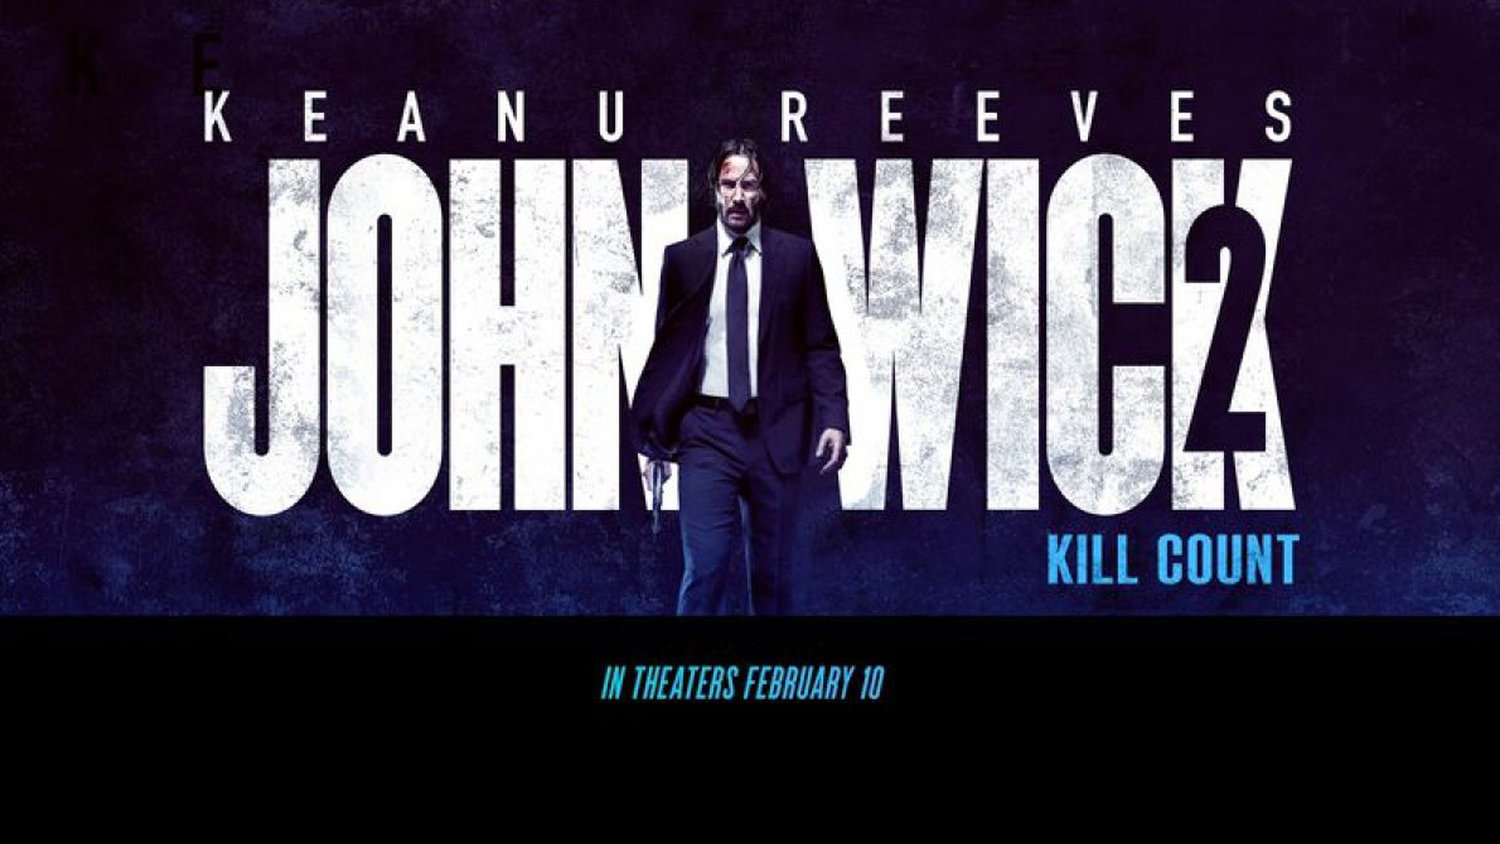 Learn the Final JOHN WICK: CHAPTER 2 Body Count in This Detailed Infographic